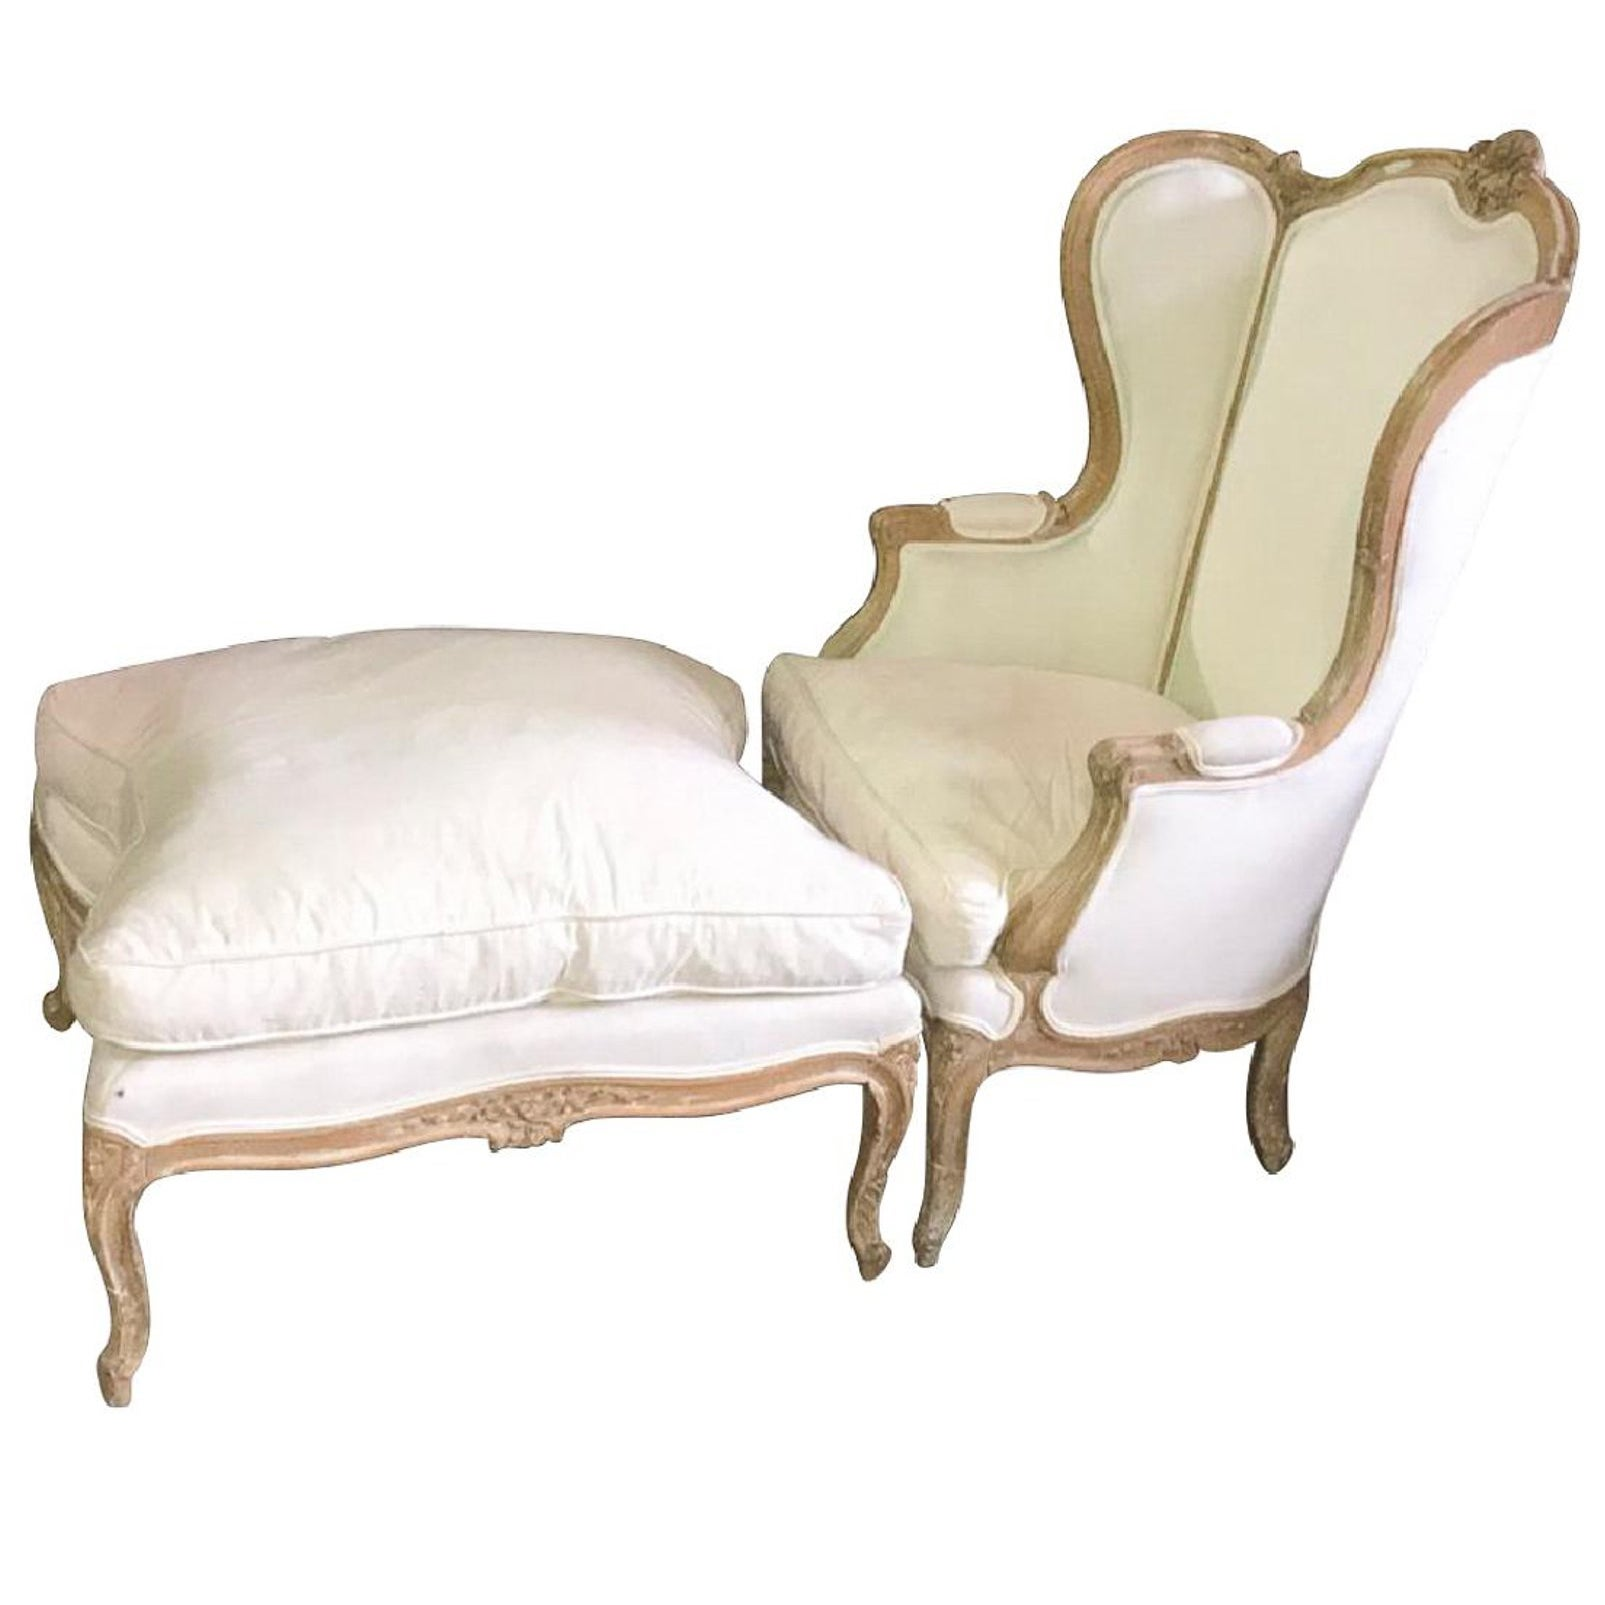 French Louis XVI Style Carved Bleached Walnut Bergere with Ottoman, 19th Century